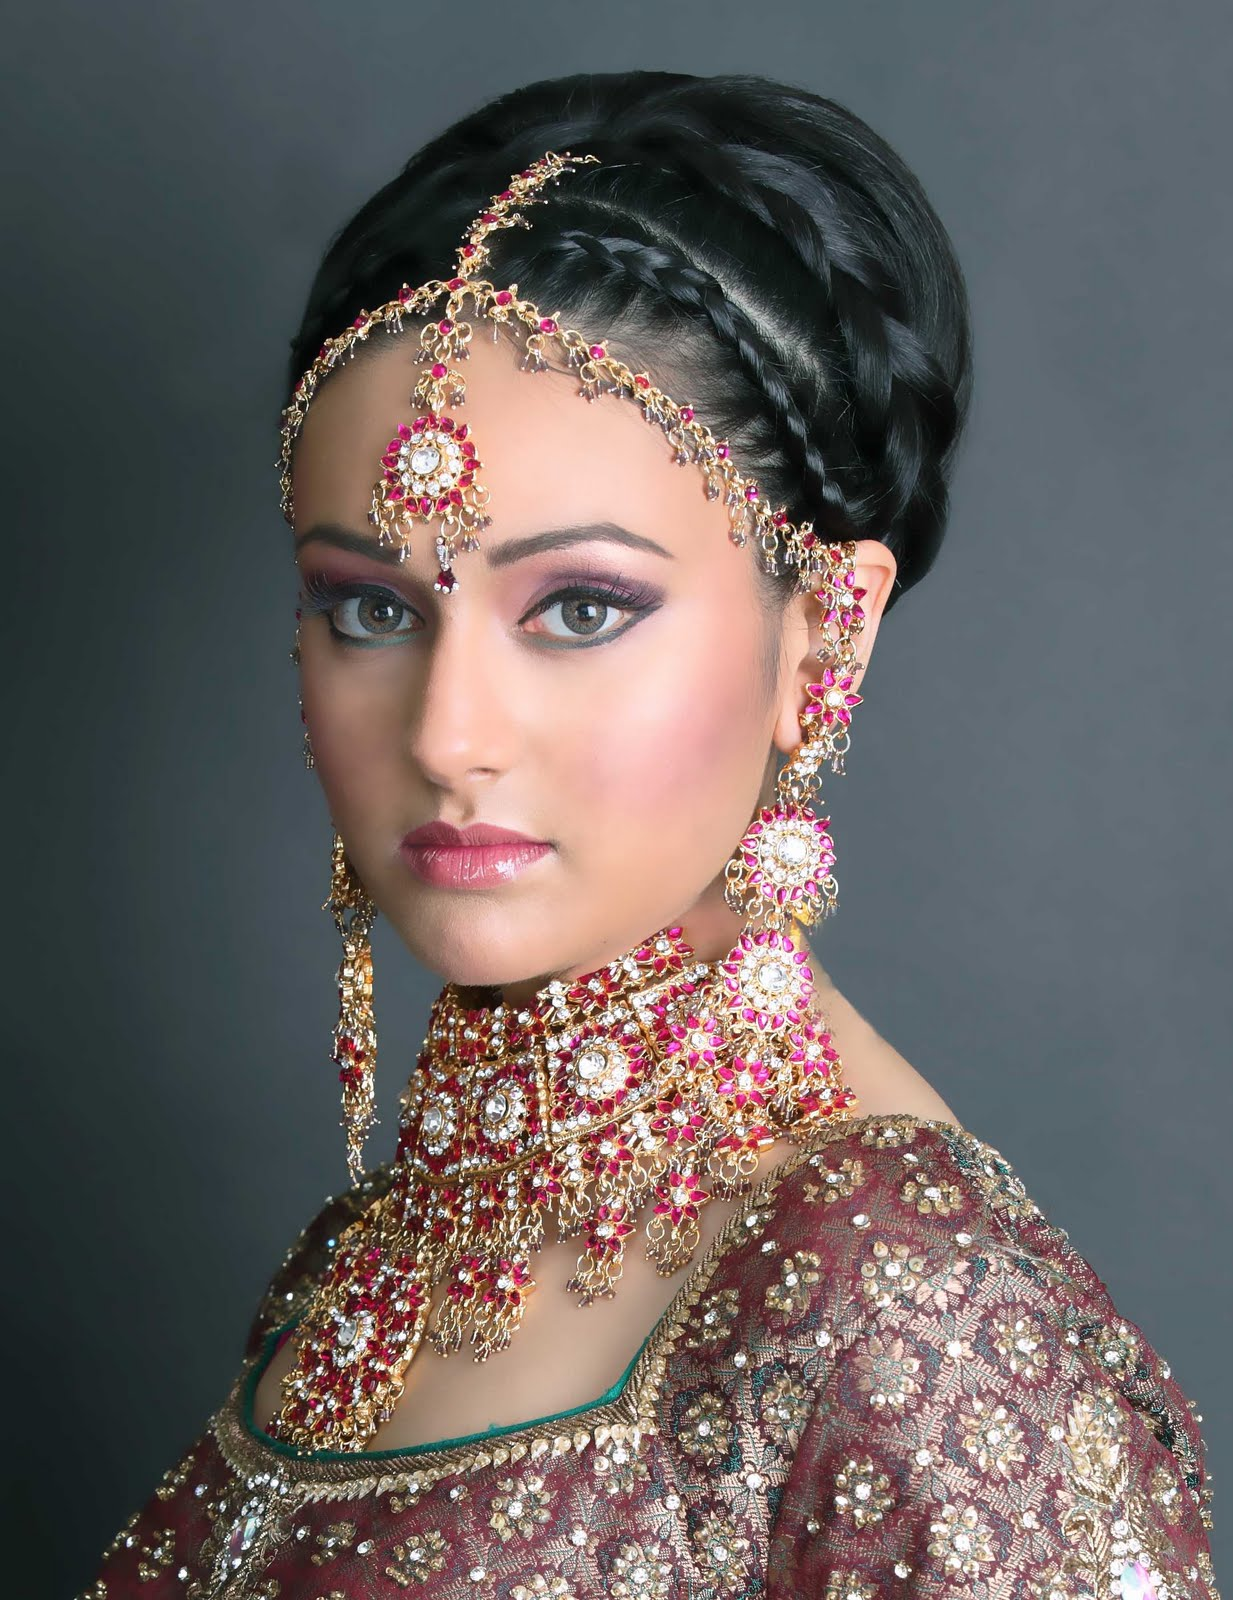 Hairstyles Popular 2012 Cool Indian Hairstyle Wallpaper